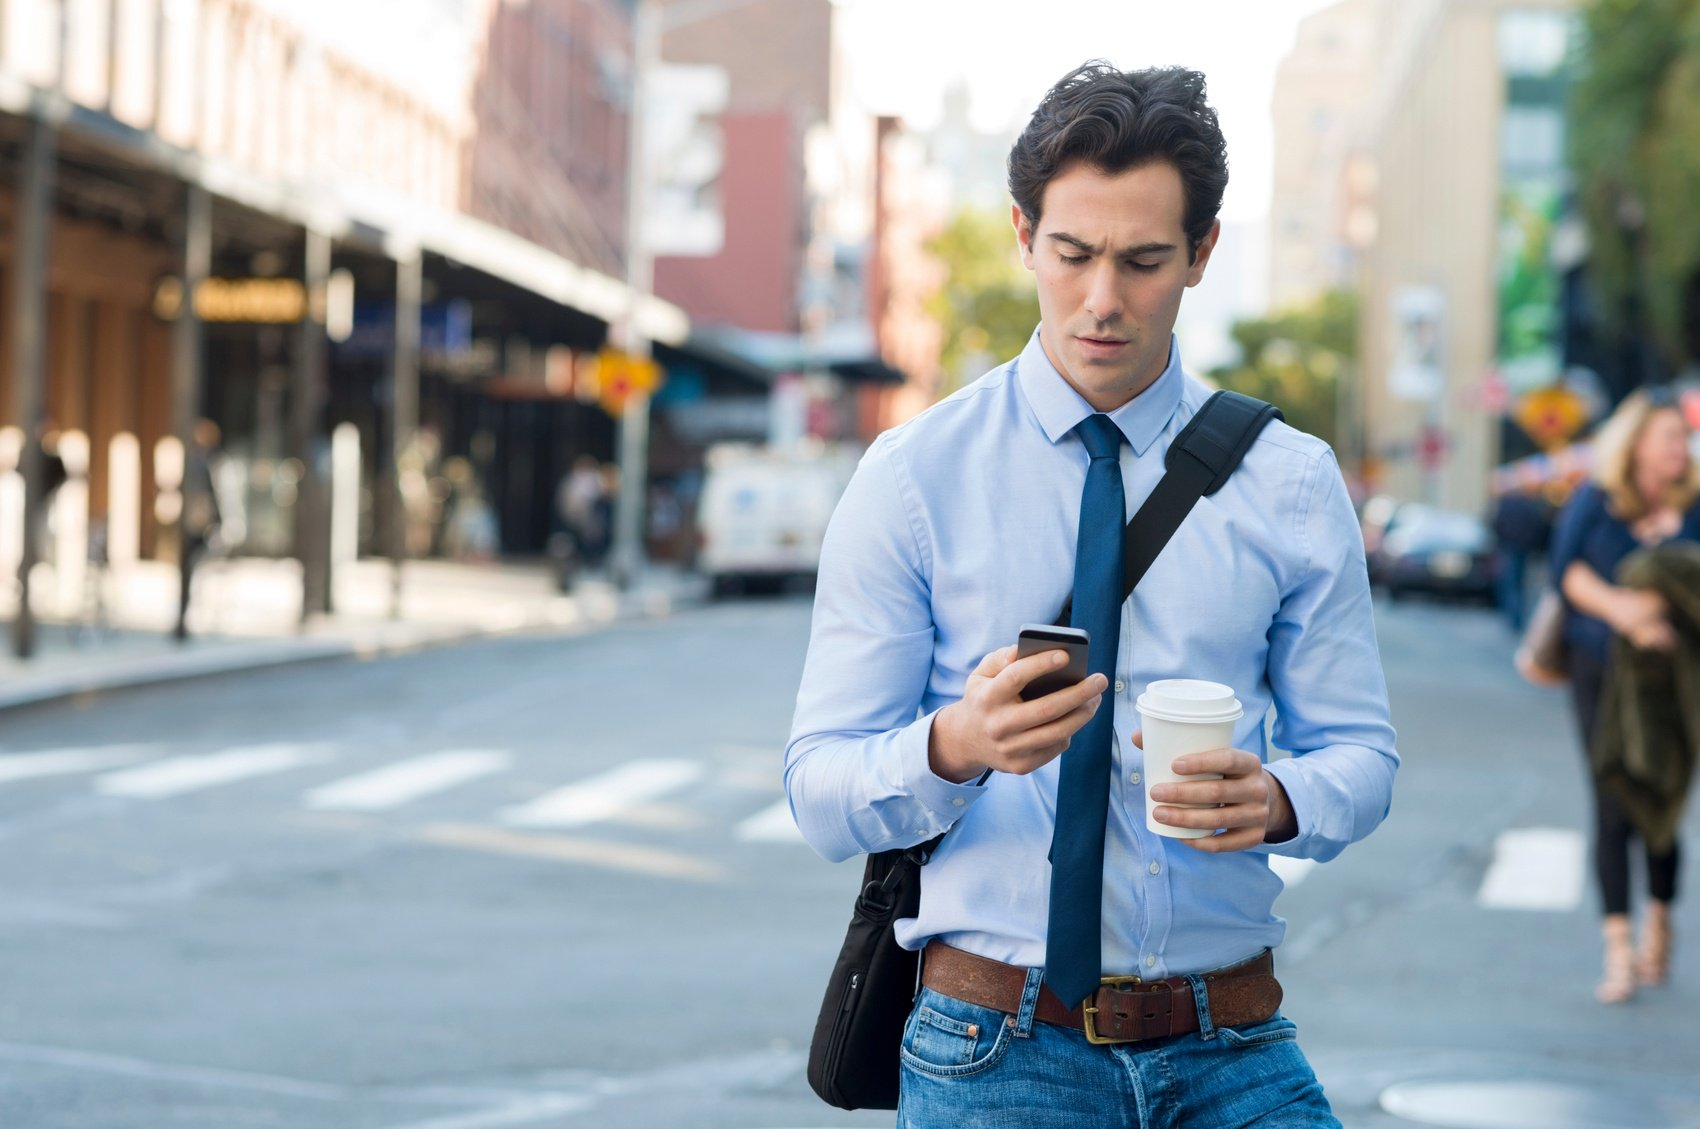 Man on phone holding coffee and walking through the streets